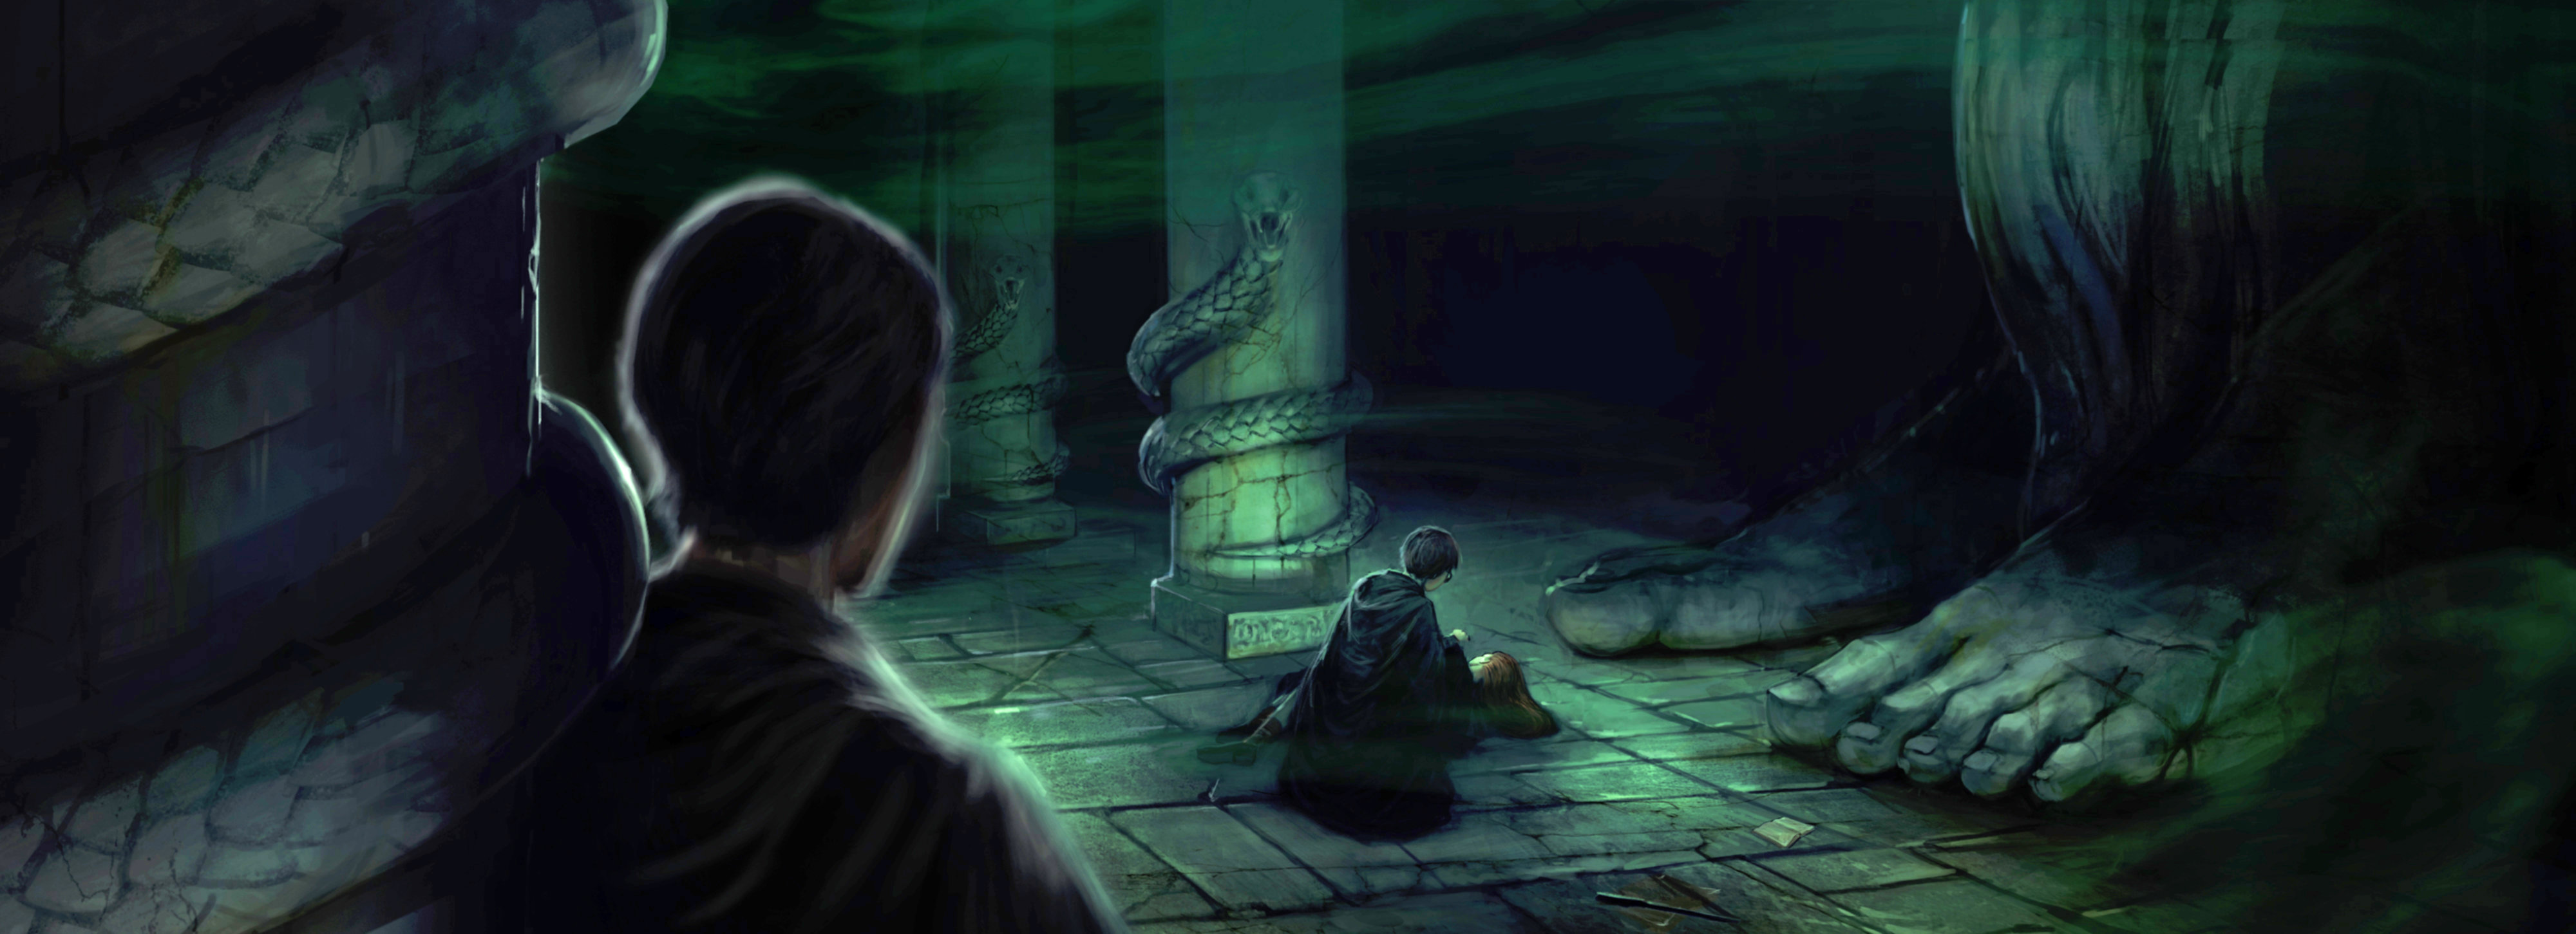 Harry crouches over Ginny in the Chamber of Secrets while Tom Riddle watches.